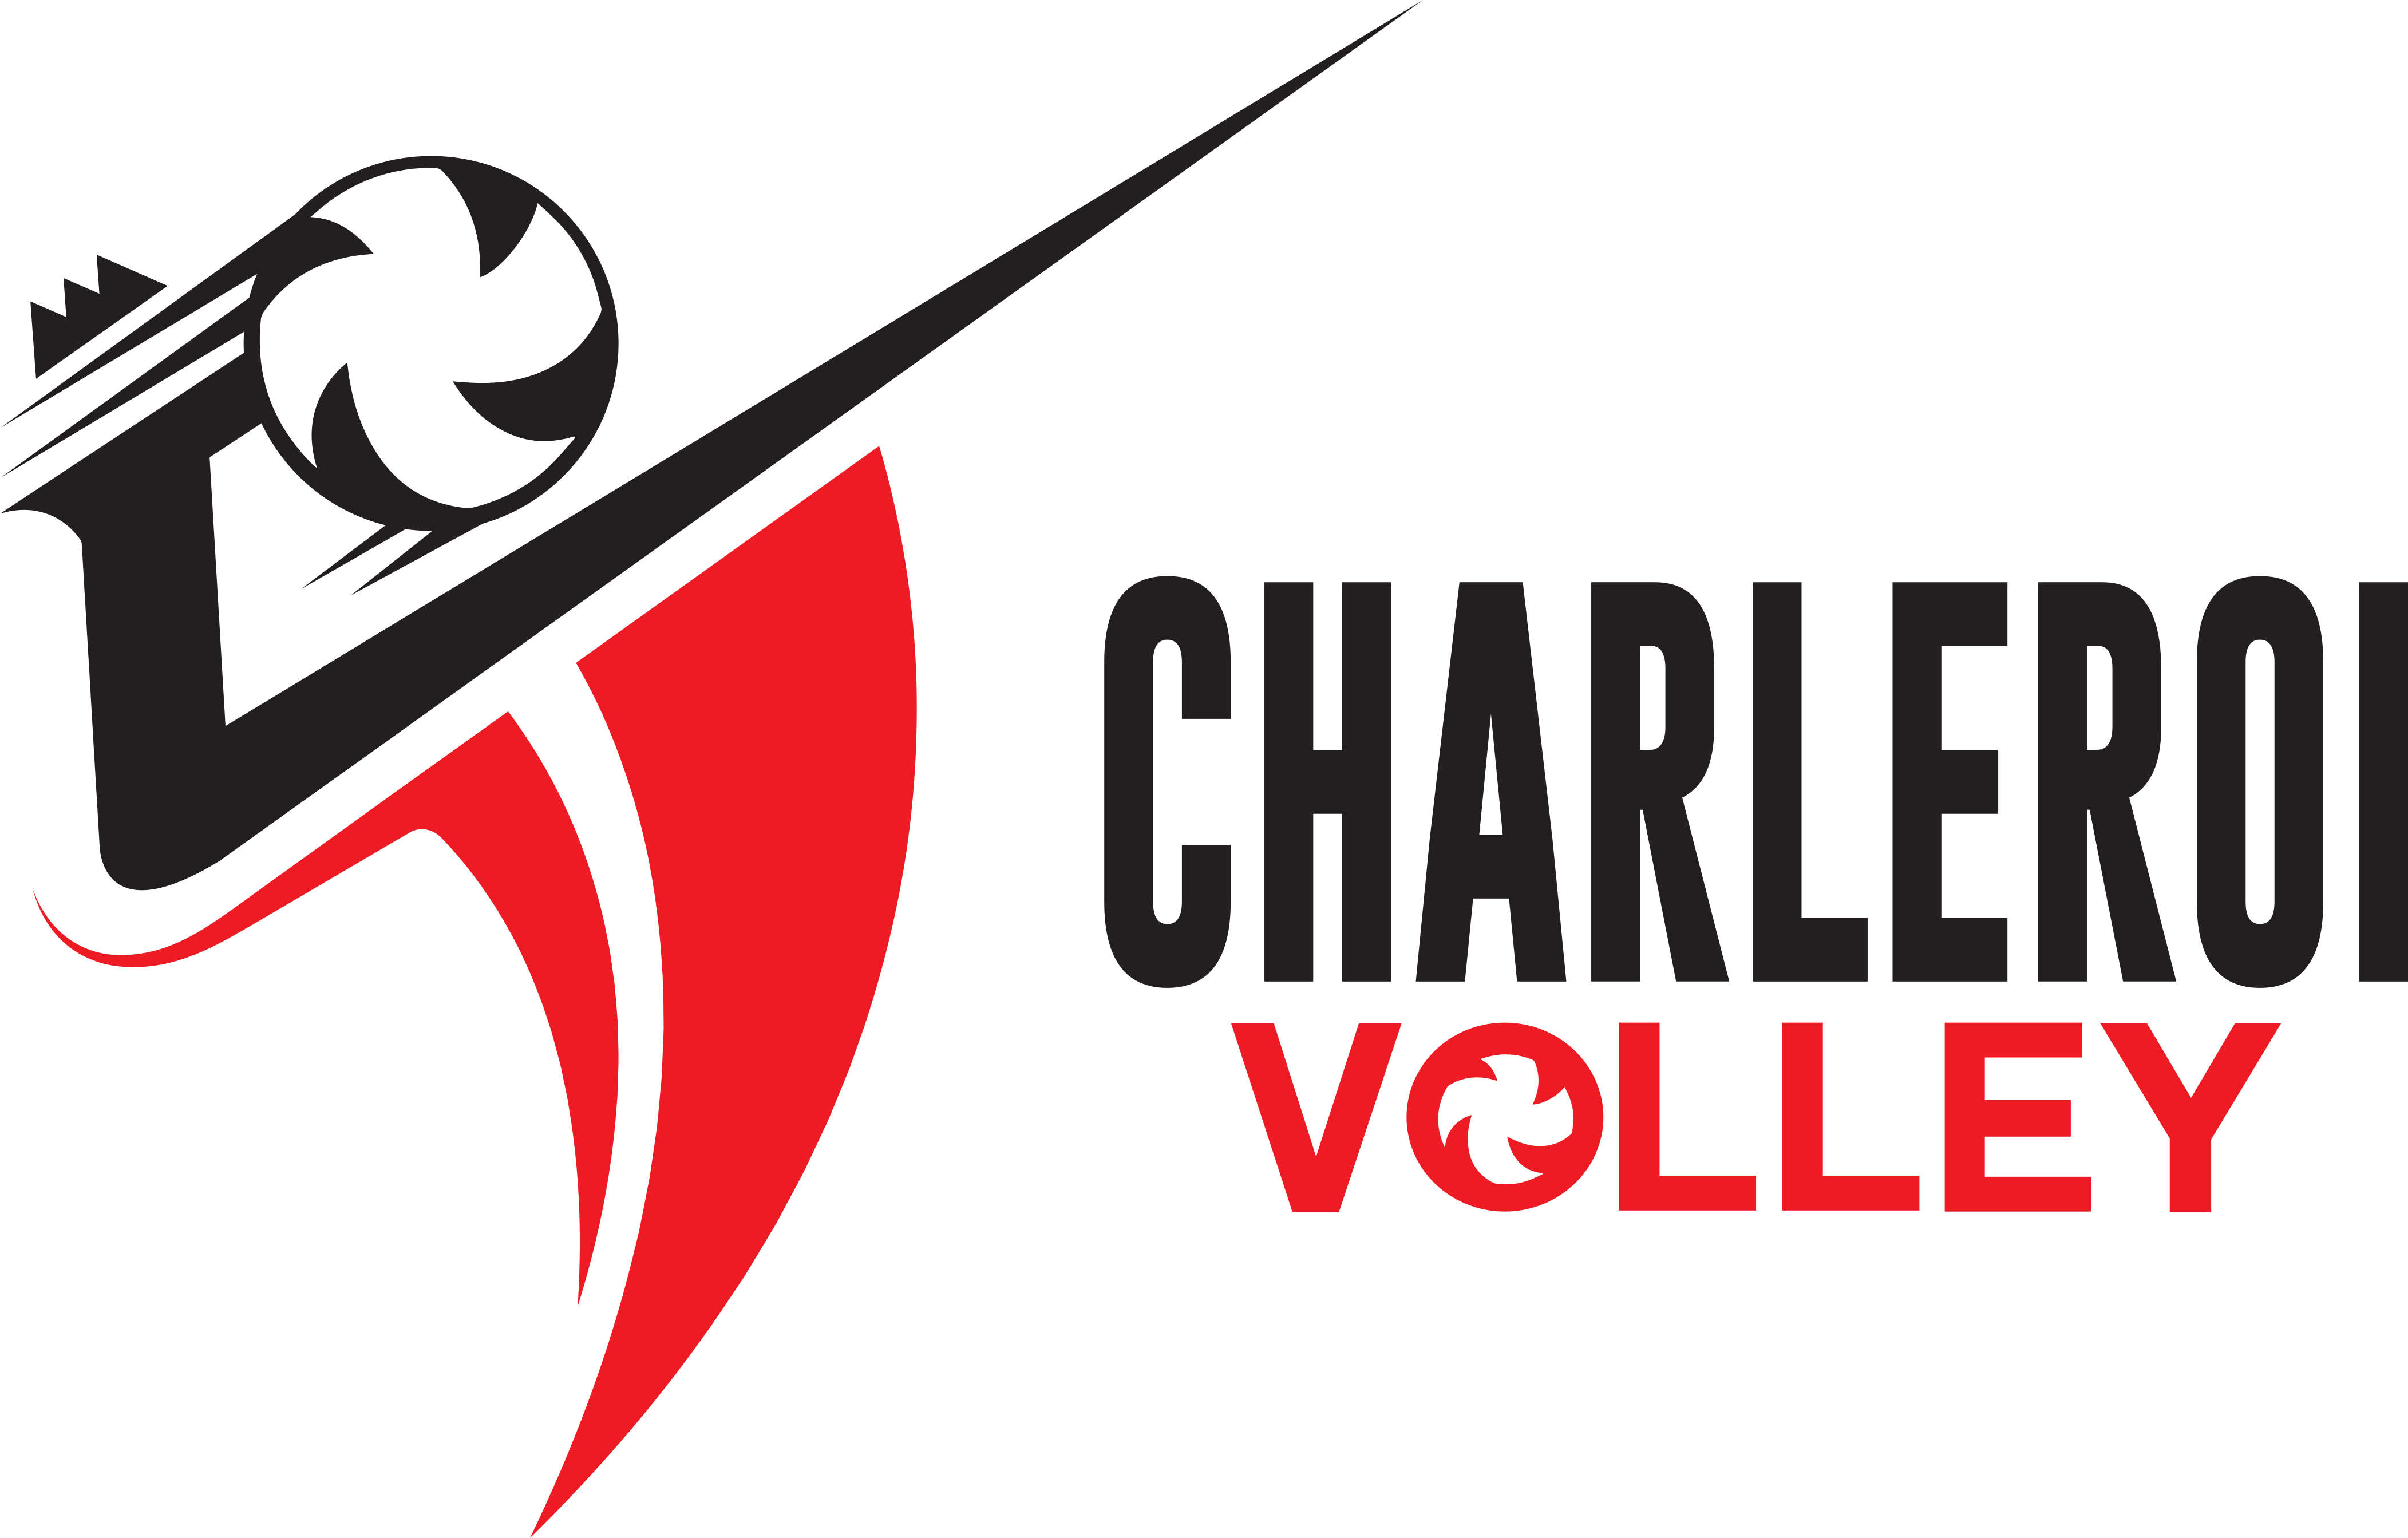 Charleroi Volley